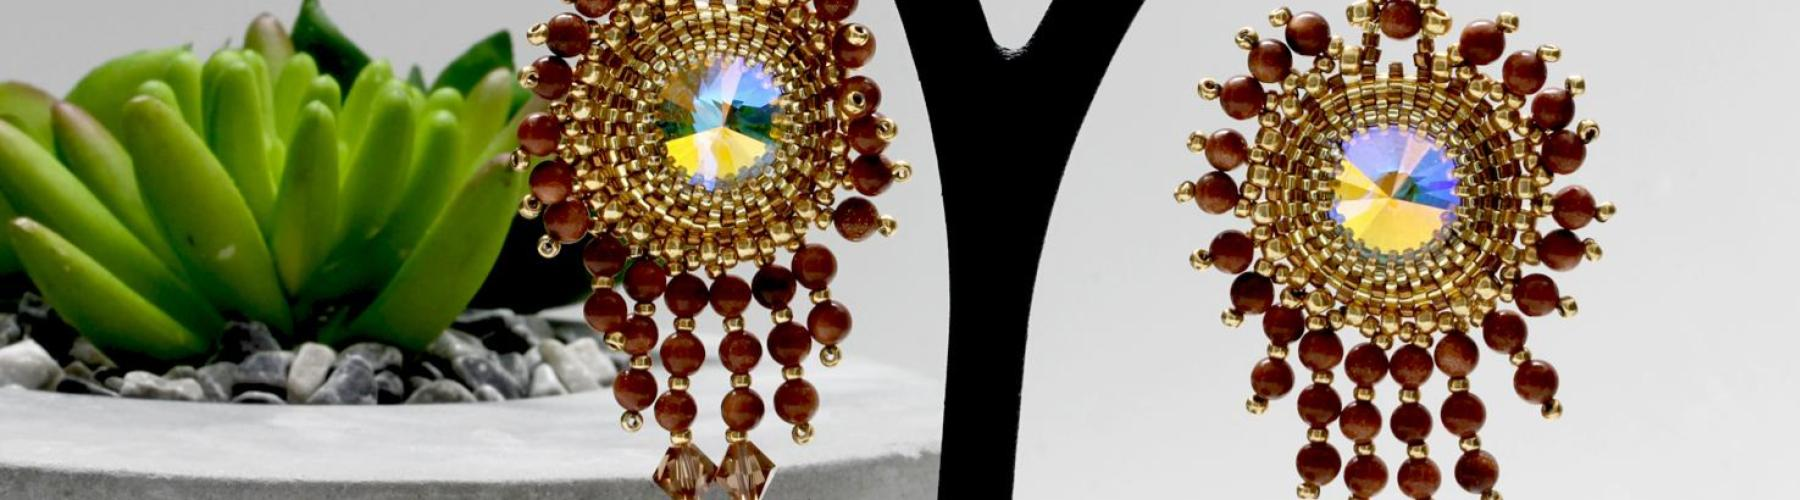 Designer Earrings Stand Out In The Crowd - Kalitheo Jewellery - kalitheo.com.au